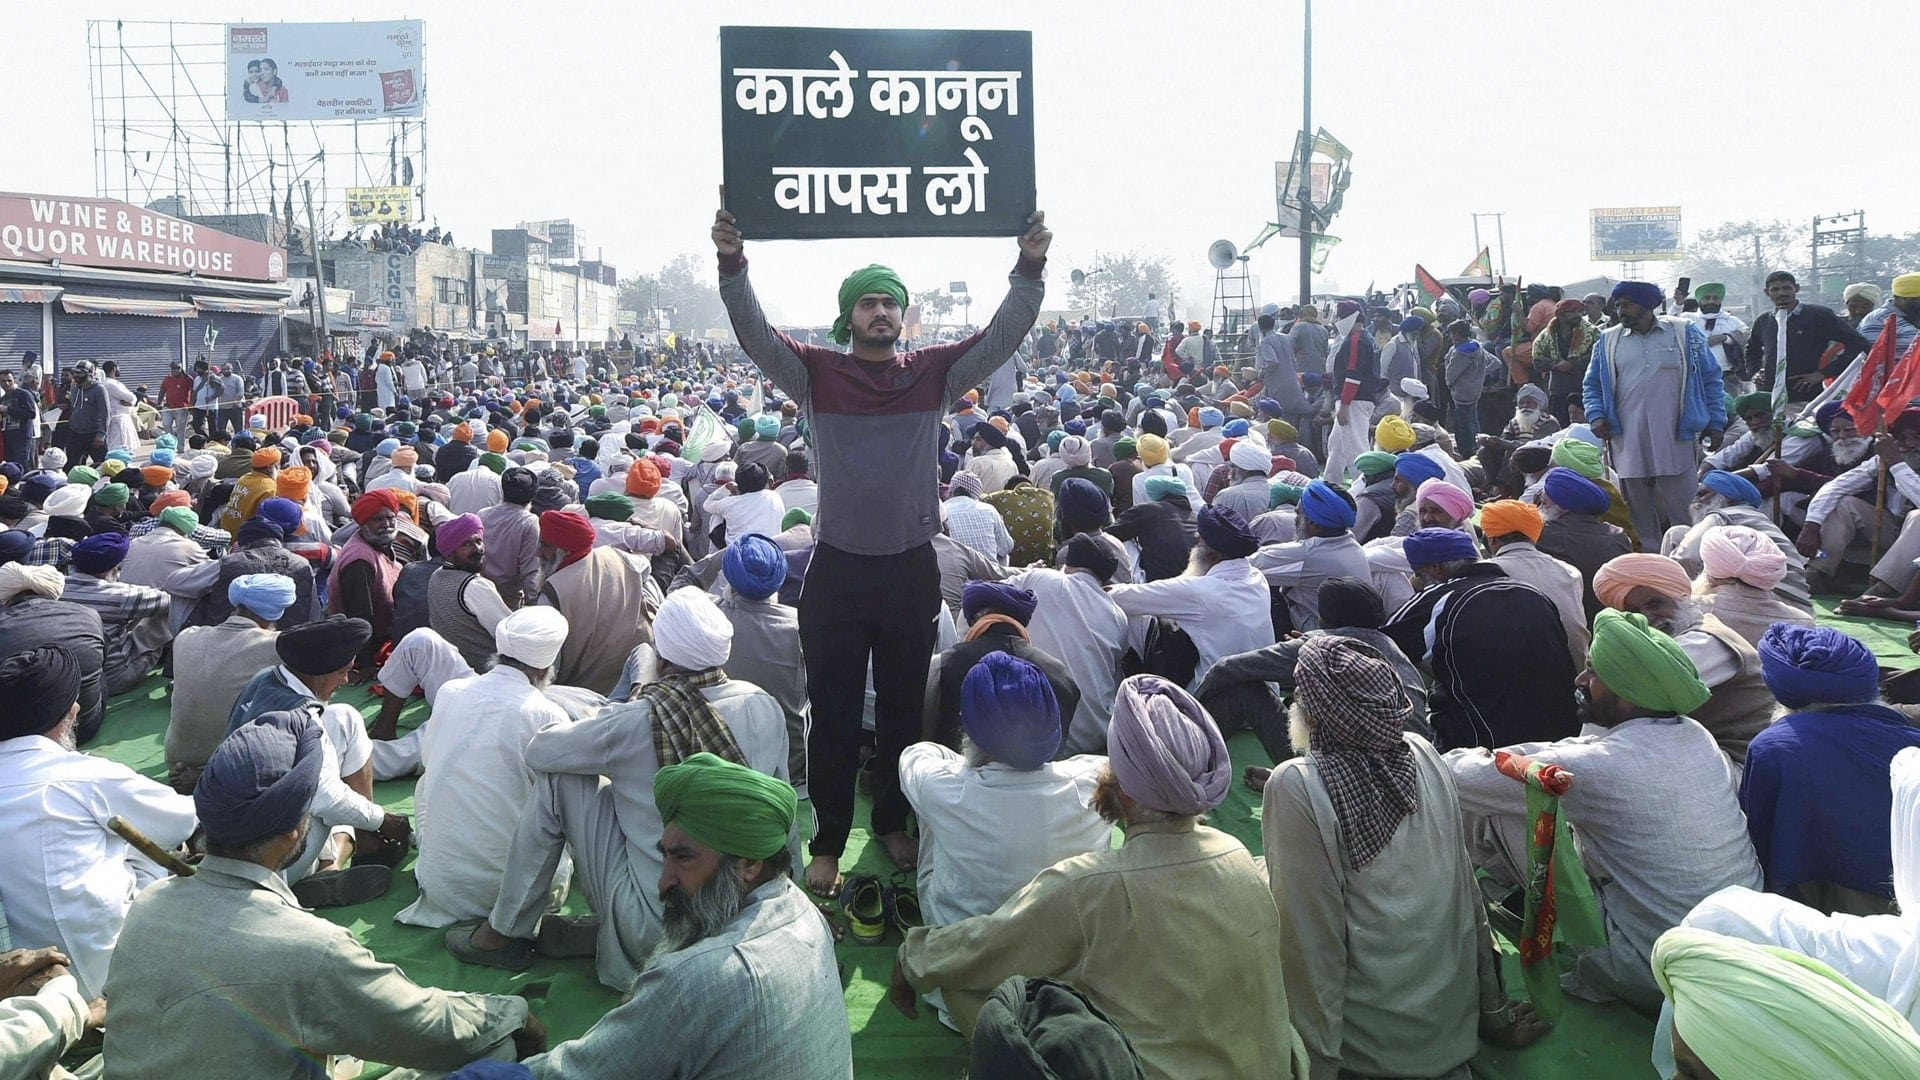 Agriculture Minister appeals farmers to end 7-month long protest